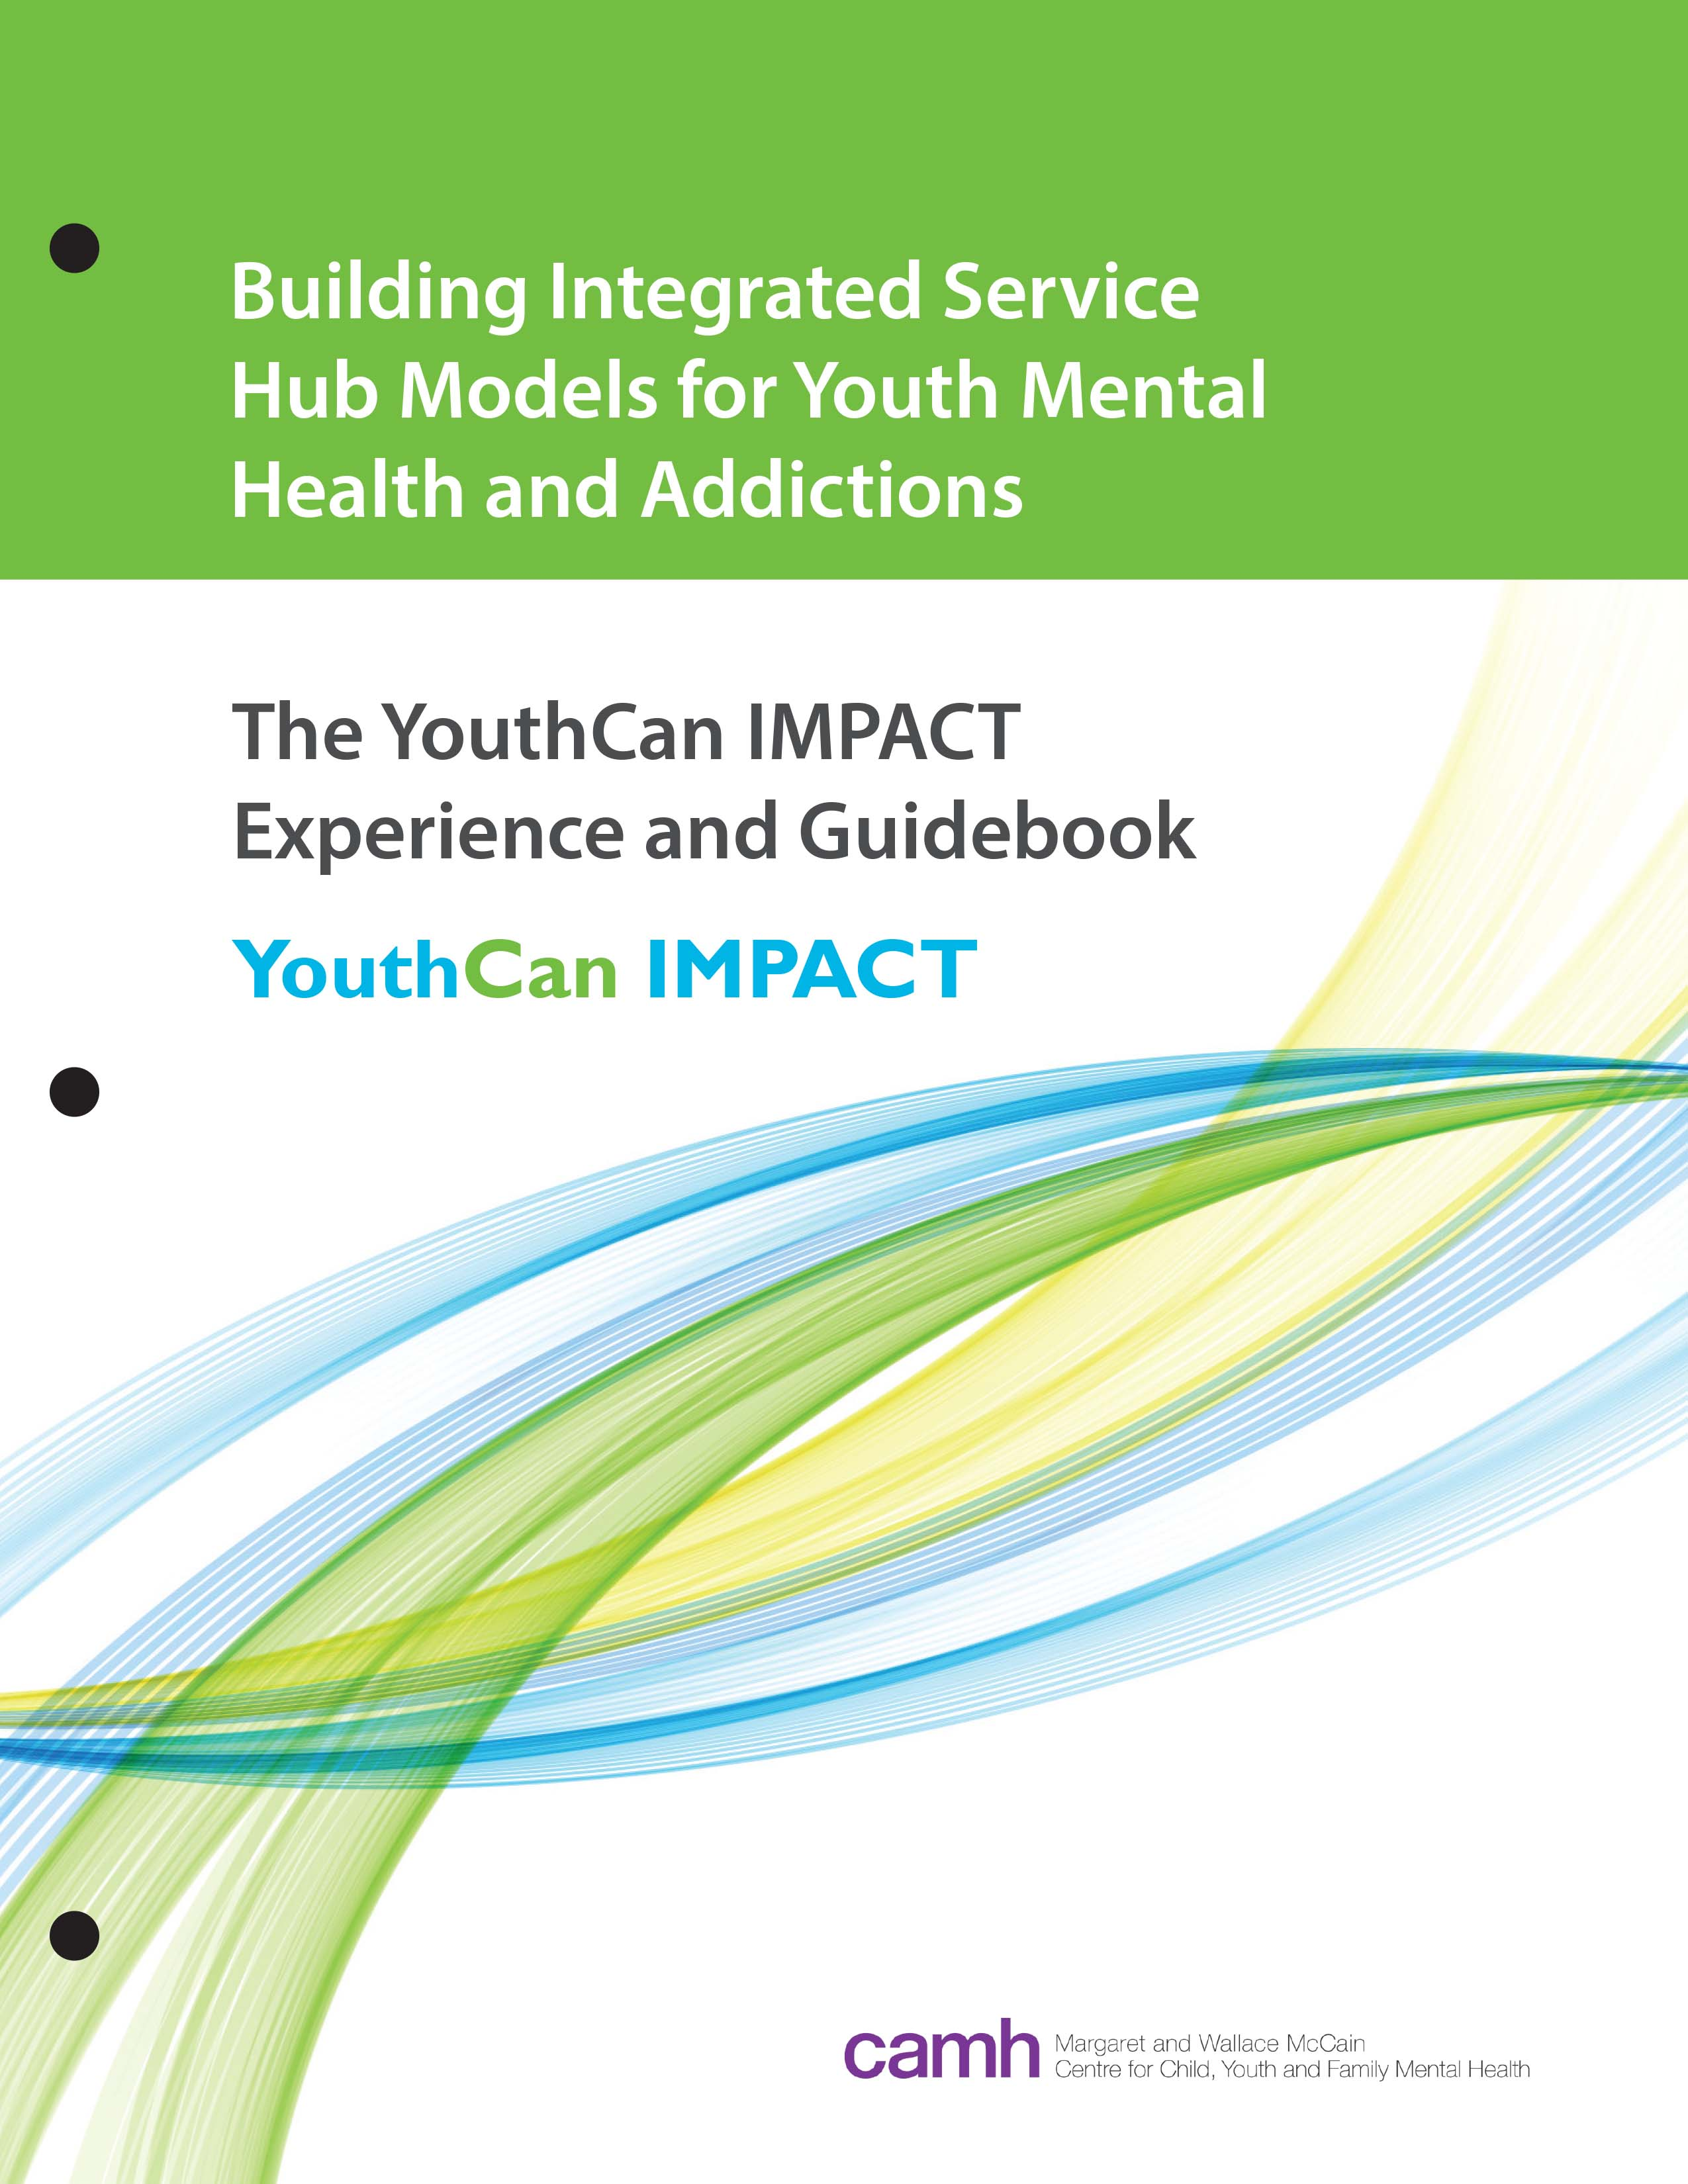 The YouthCan IMPACT guidebook.